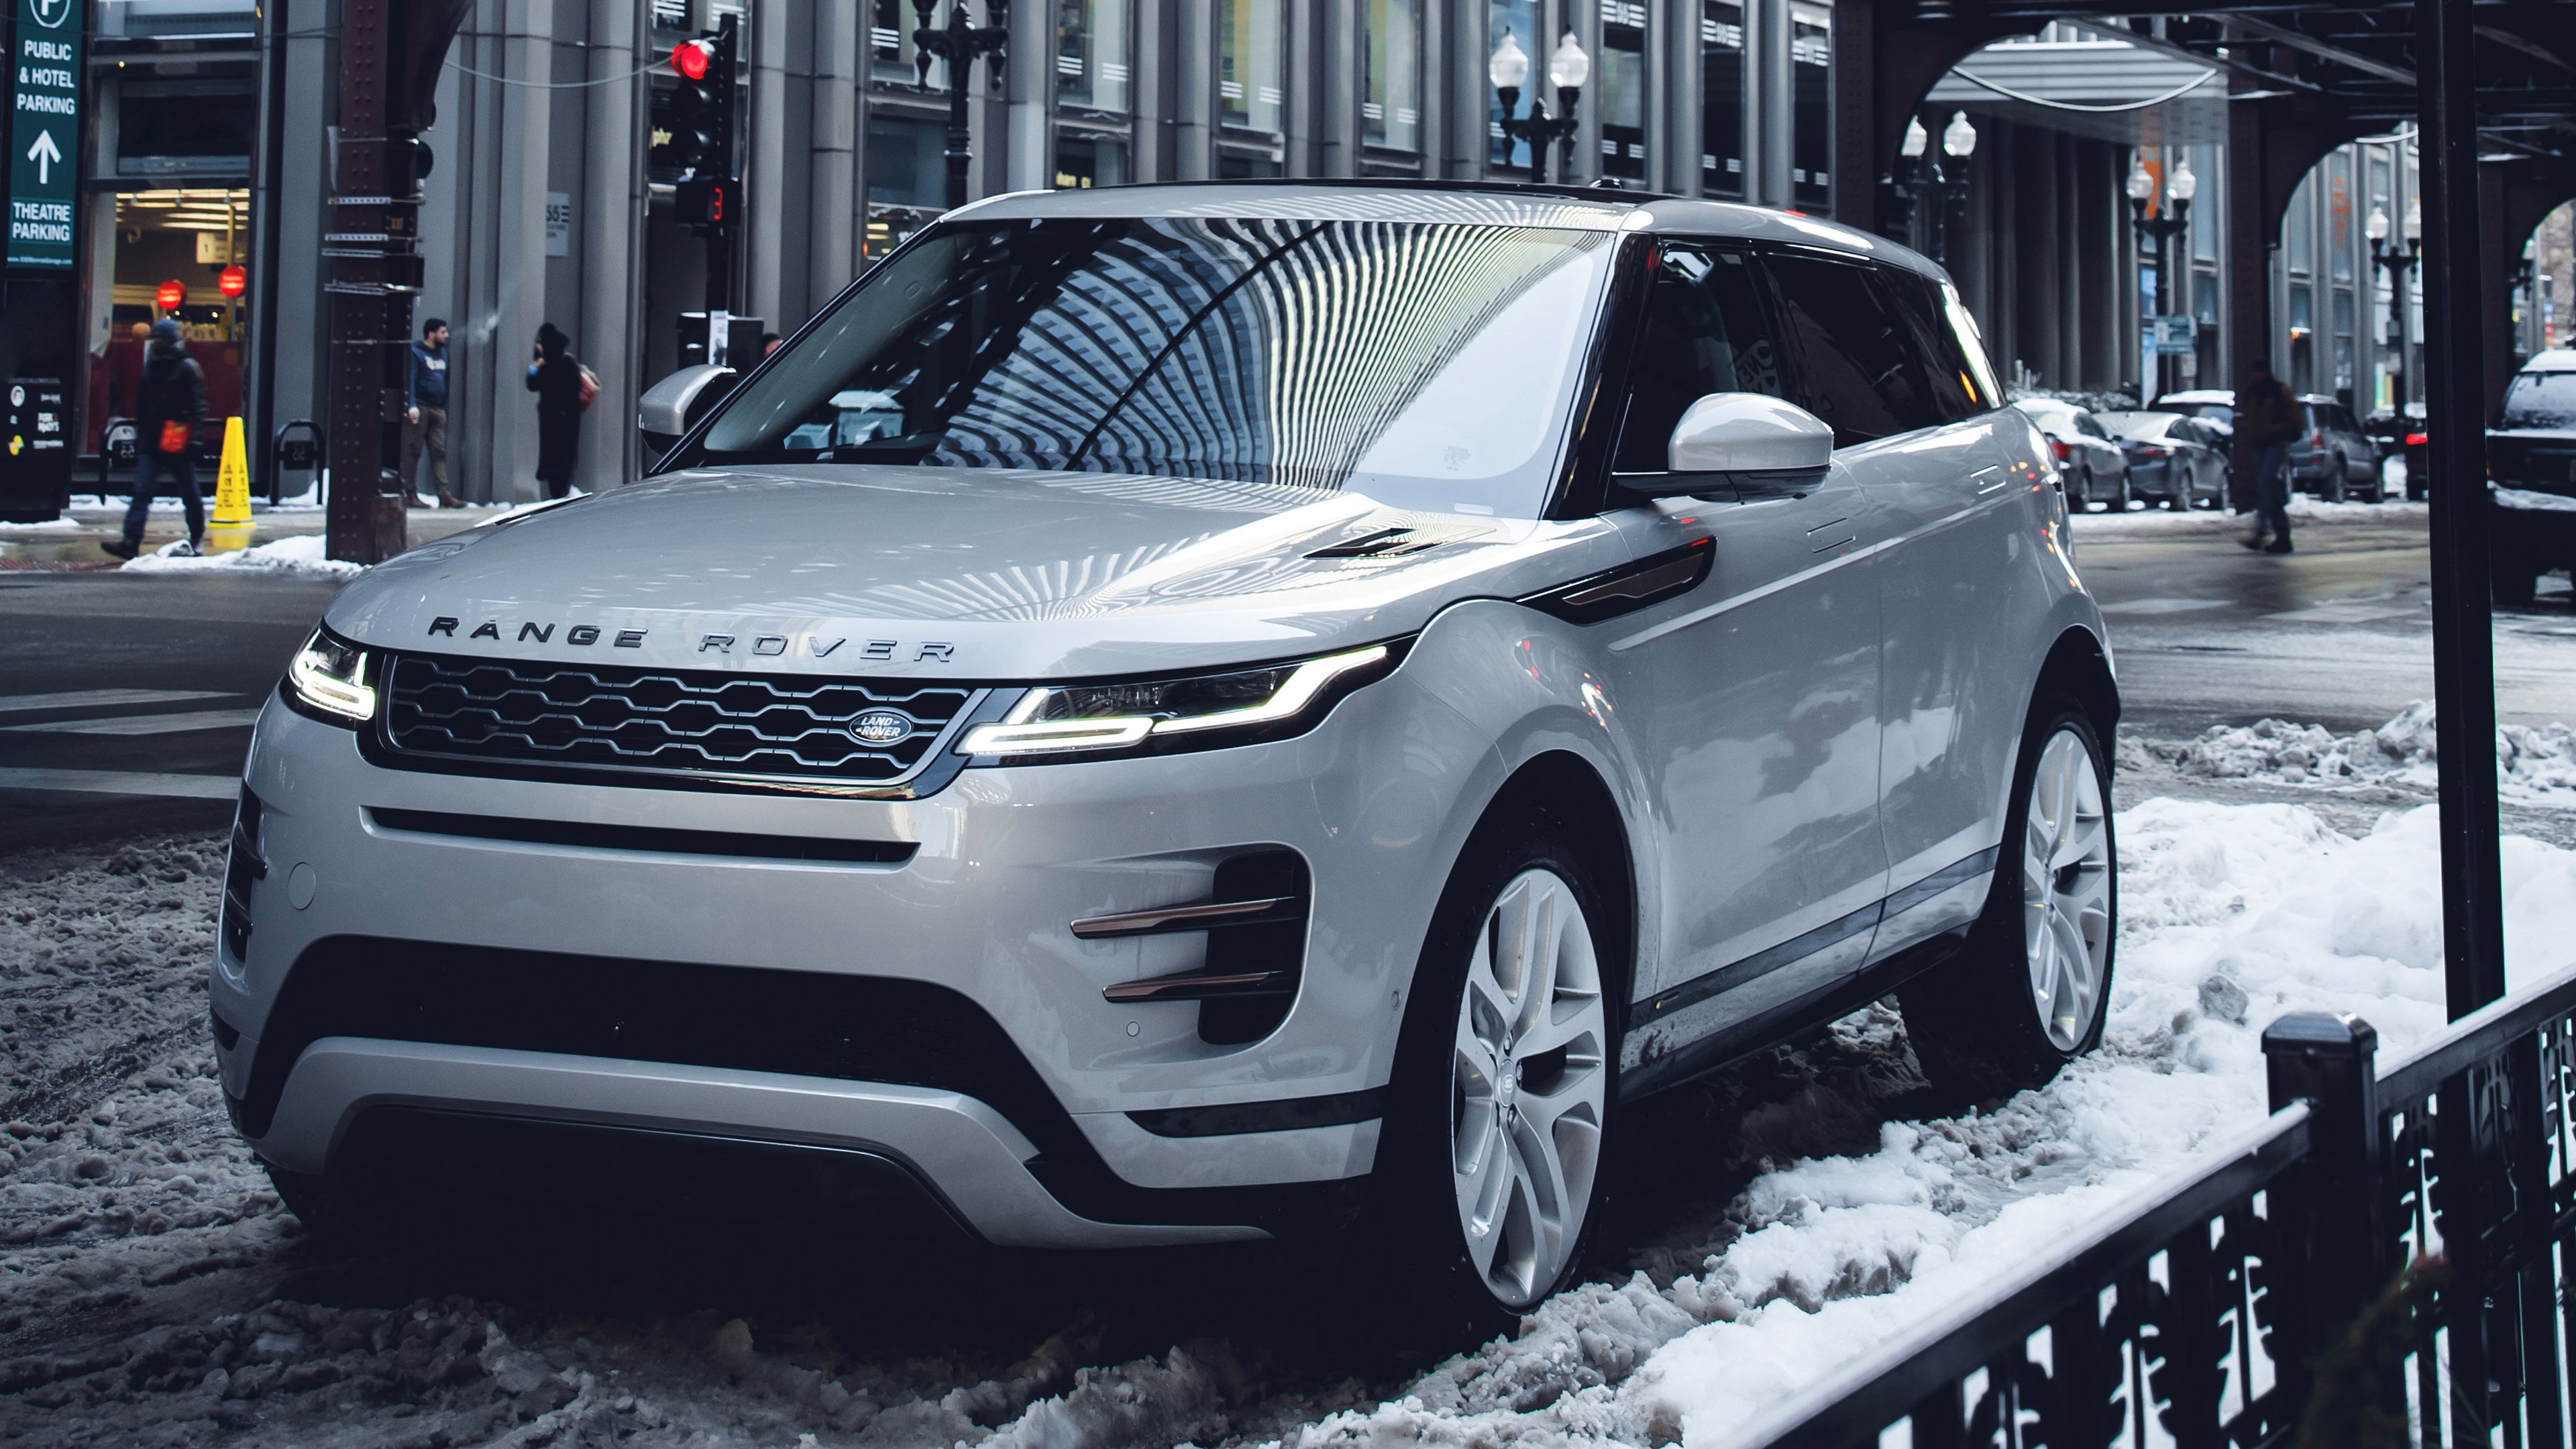 Range Rover Evoque P300 S R Dynamic 2019 4K Wallpaper HD Car 3840x2160